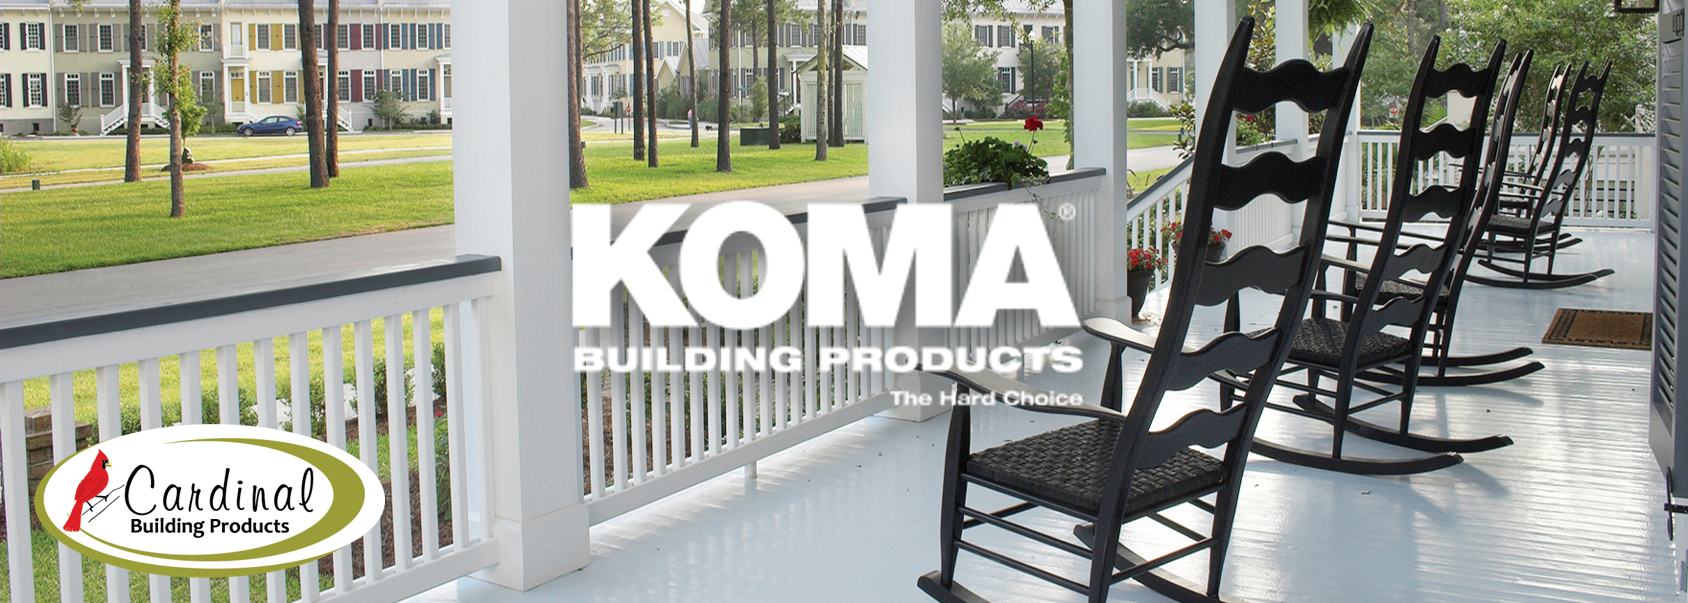 KOMA Building Products Harmony Porch Flooring - Cardinal Building Products